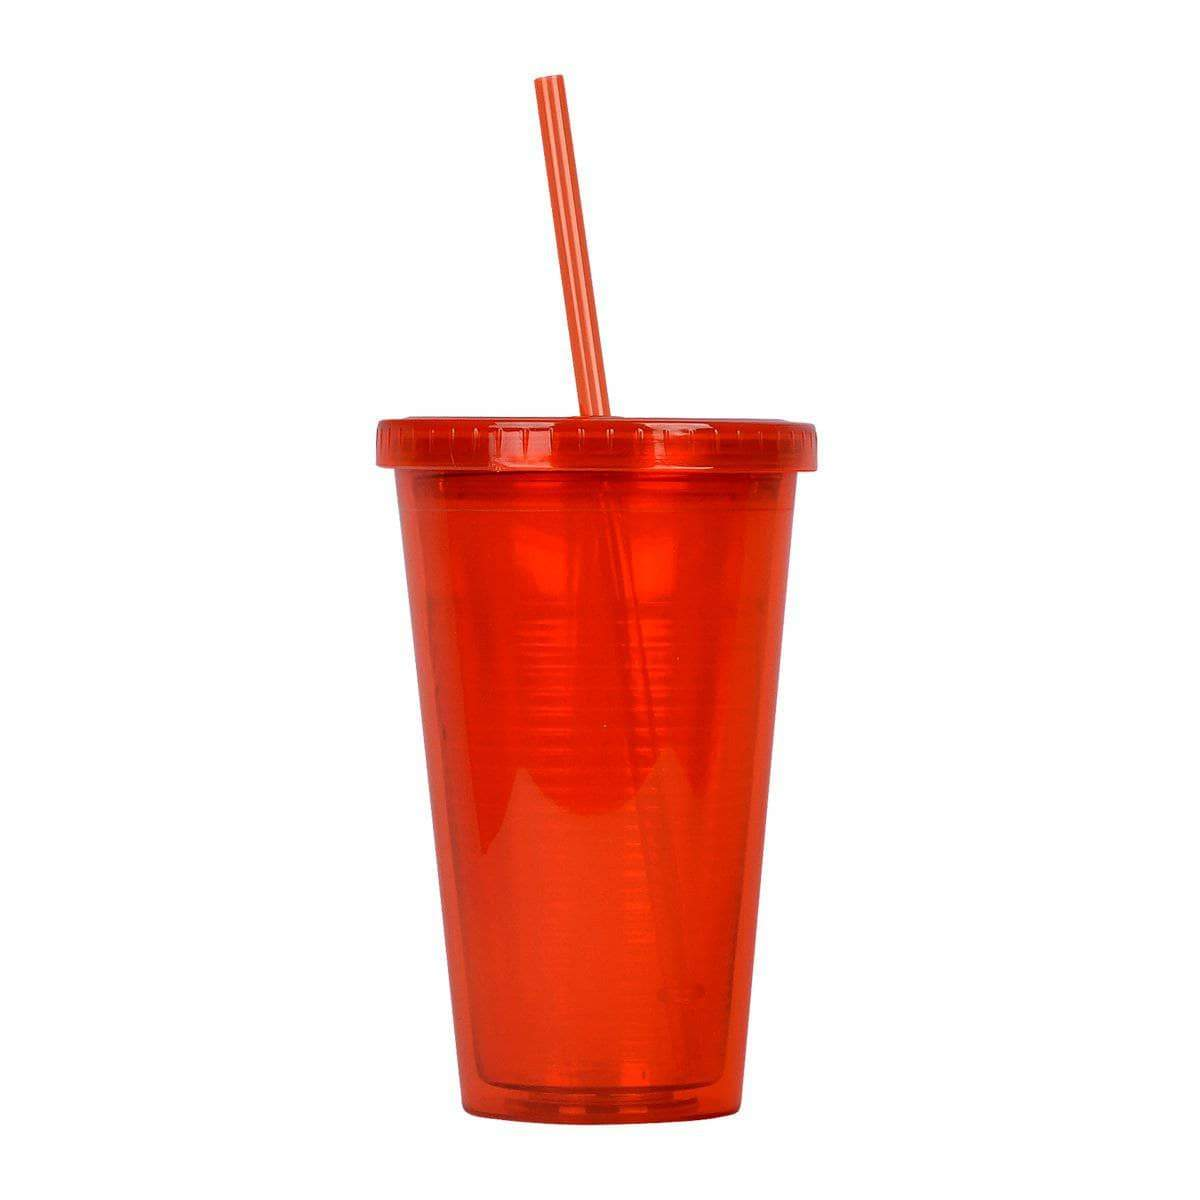 Geo Bottles Tumblers Red 16oz Double Wall Cup with Straw - BPA Free